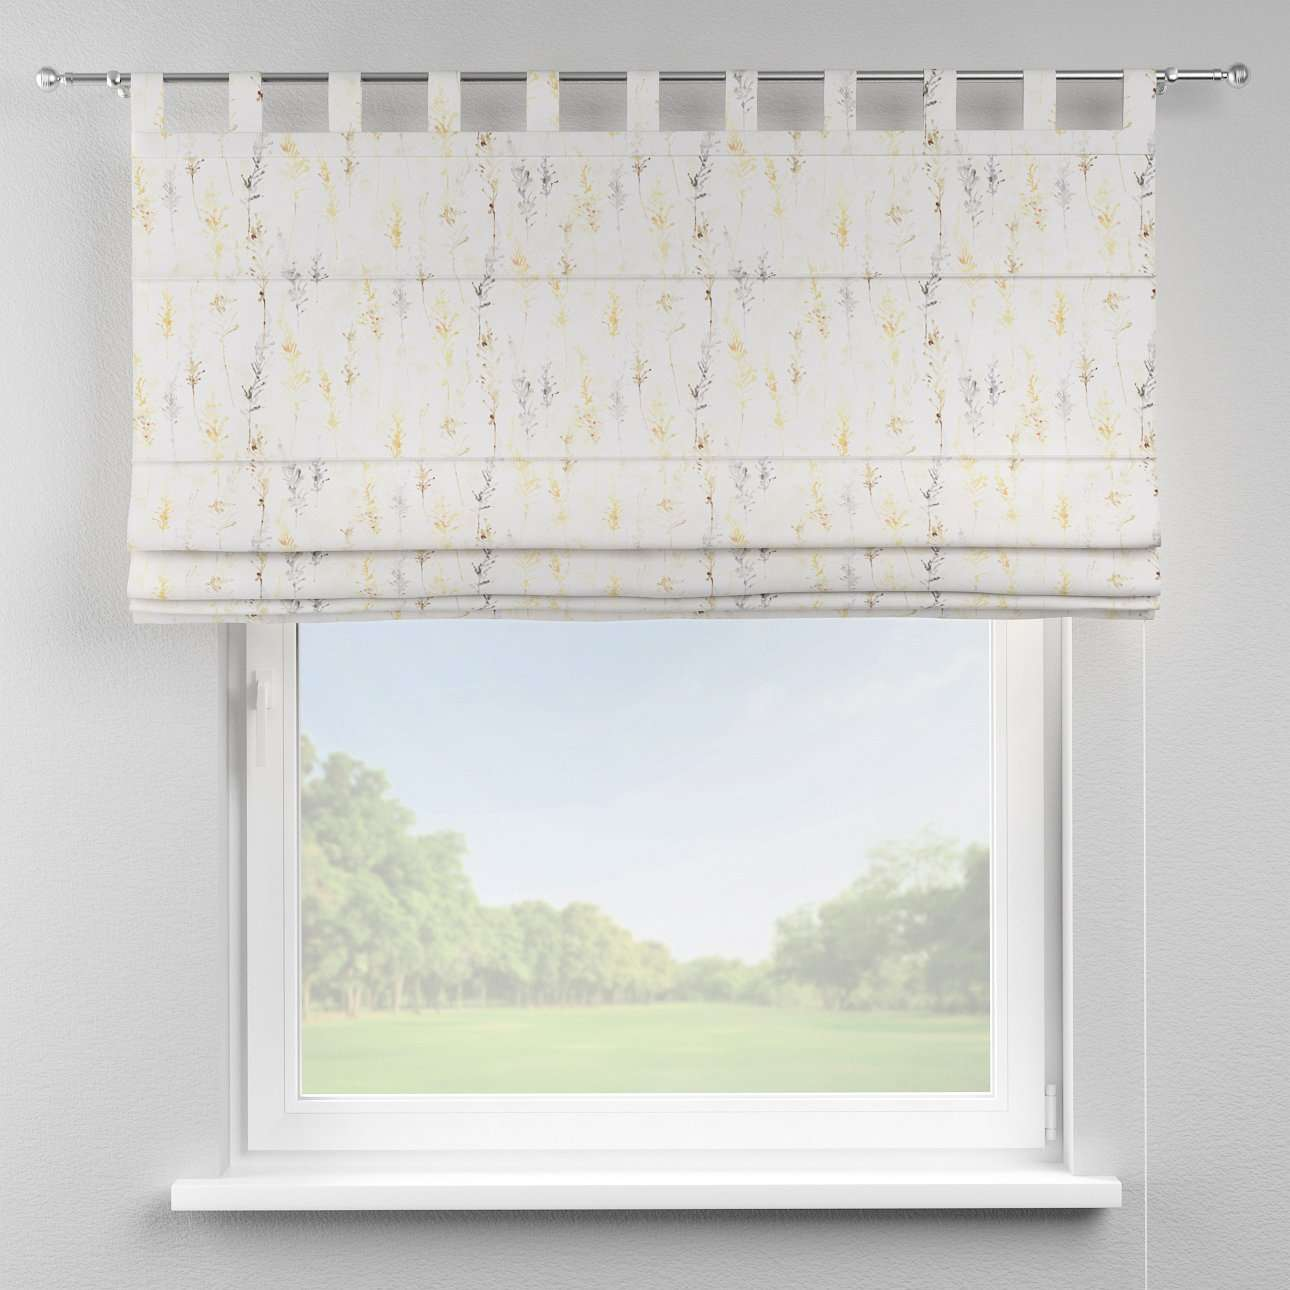 Verona tab top roman blind 80 x 170 cm (31.5 x 67 inch) in collection Acapulco, fabric: 141-36